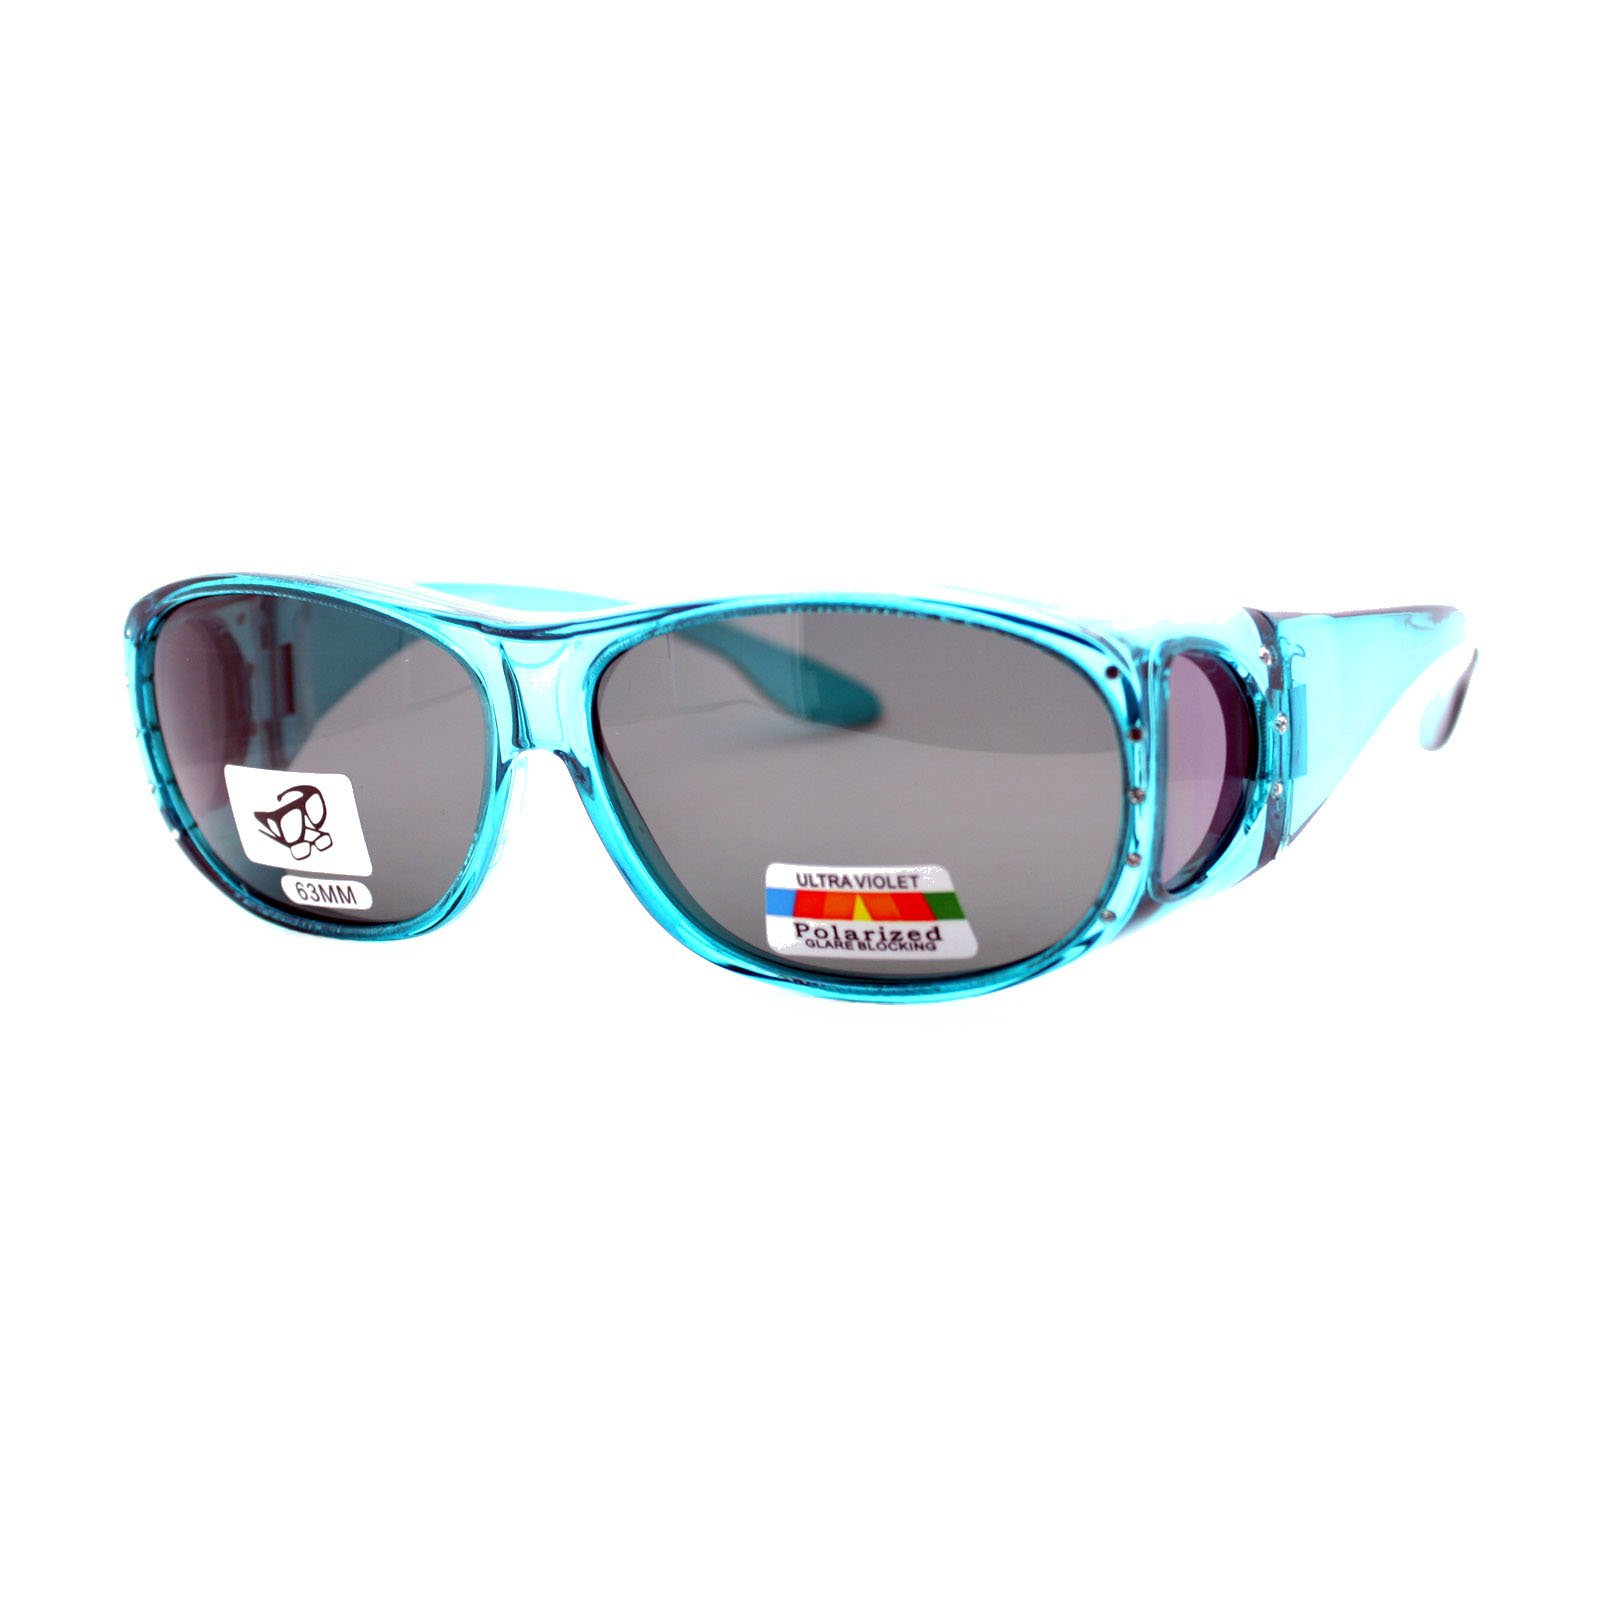 Womens Polarized Fit Over Glasses Rhinestone Sunglasses Oval Rectangular Teal by PASTL (Image #1)